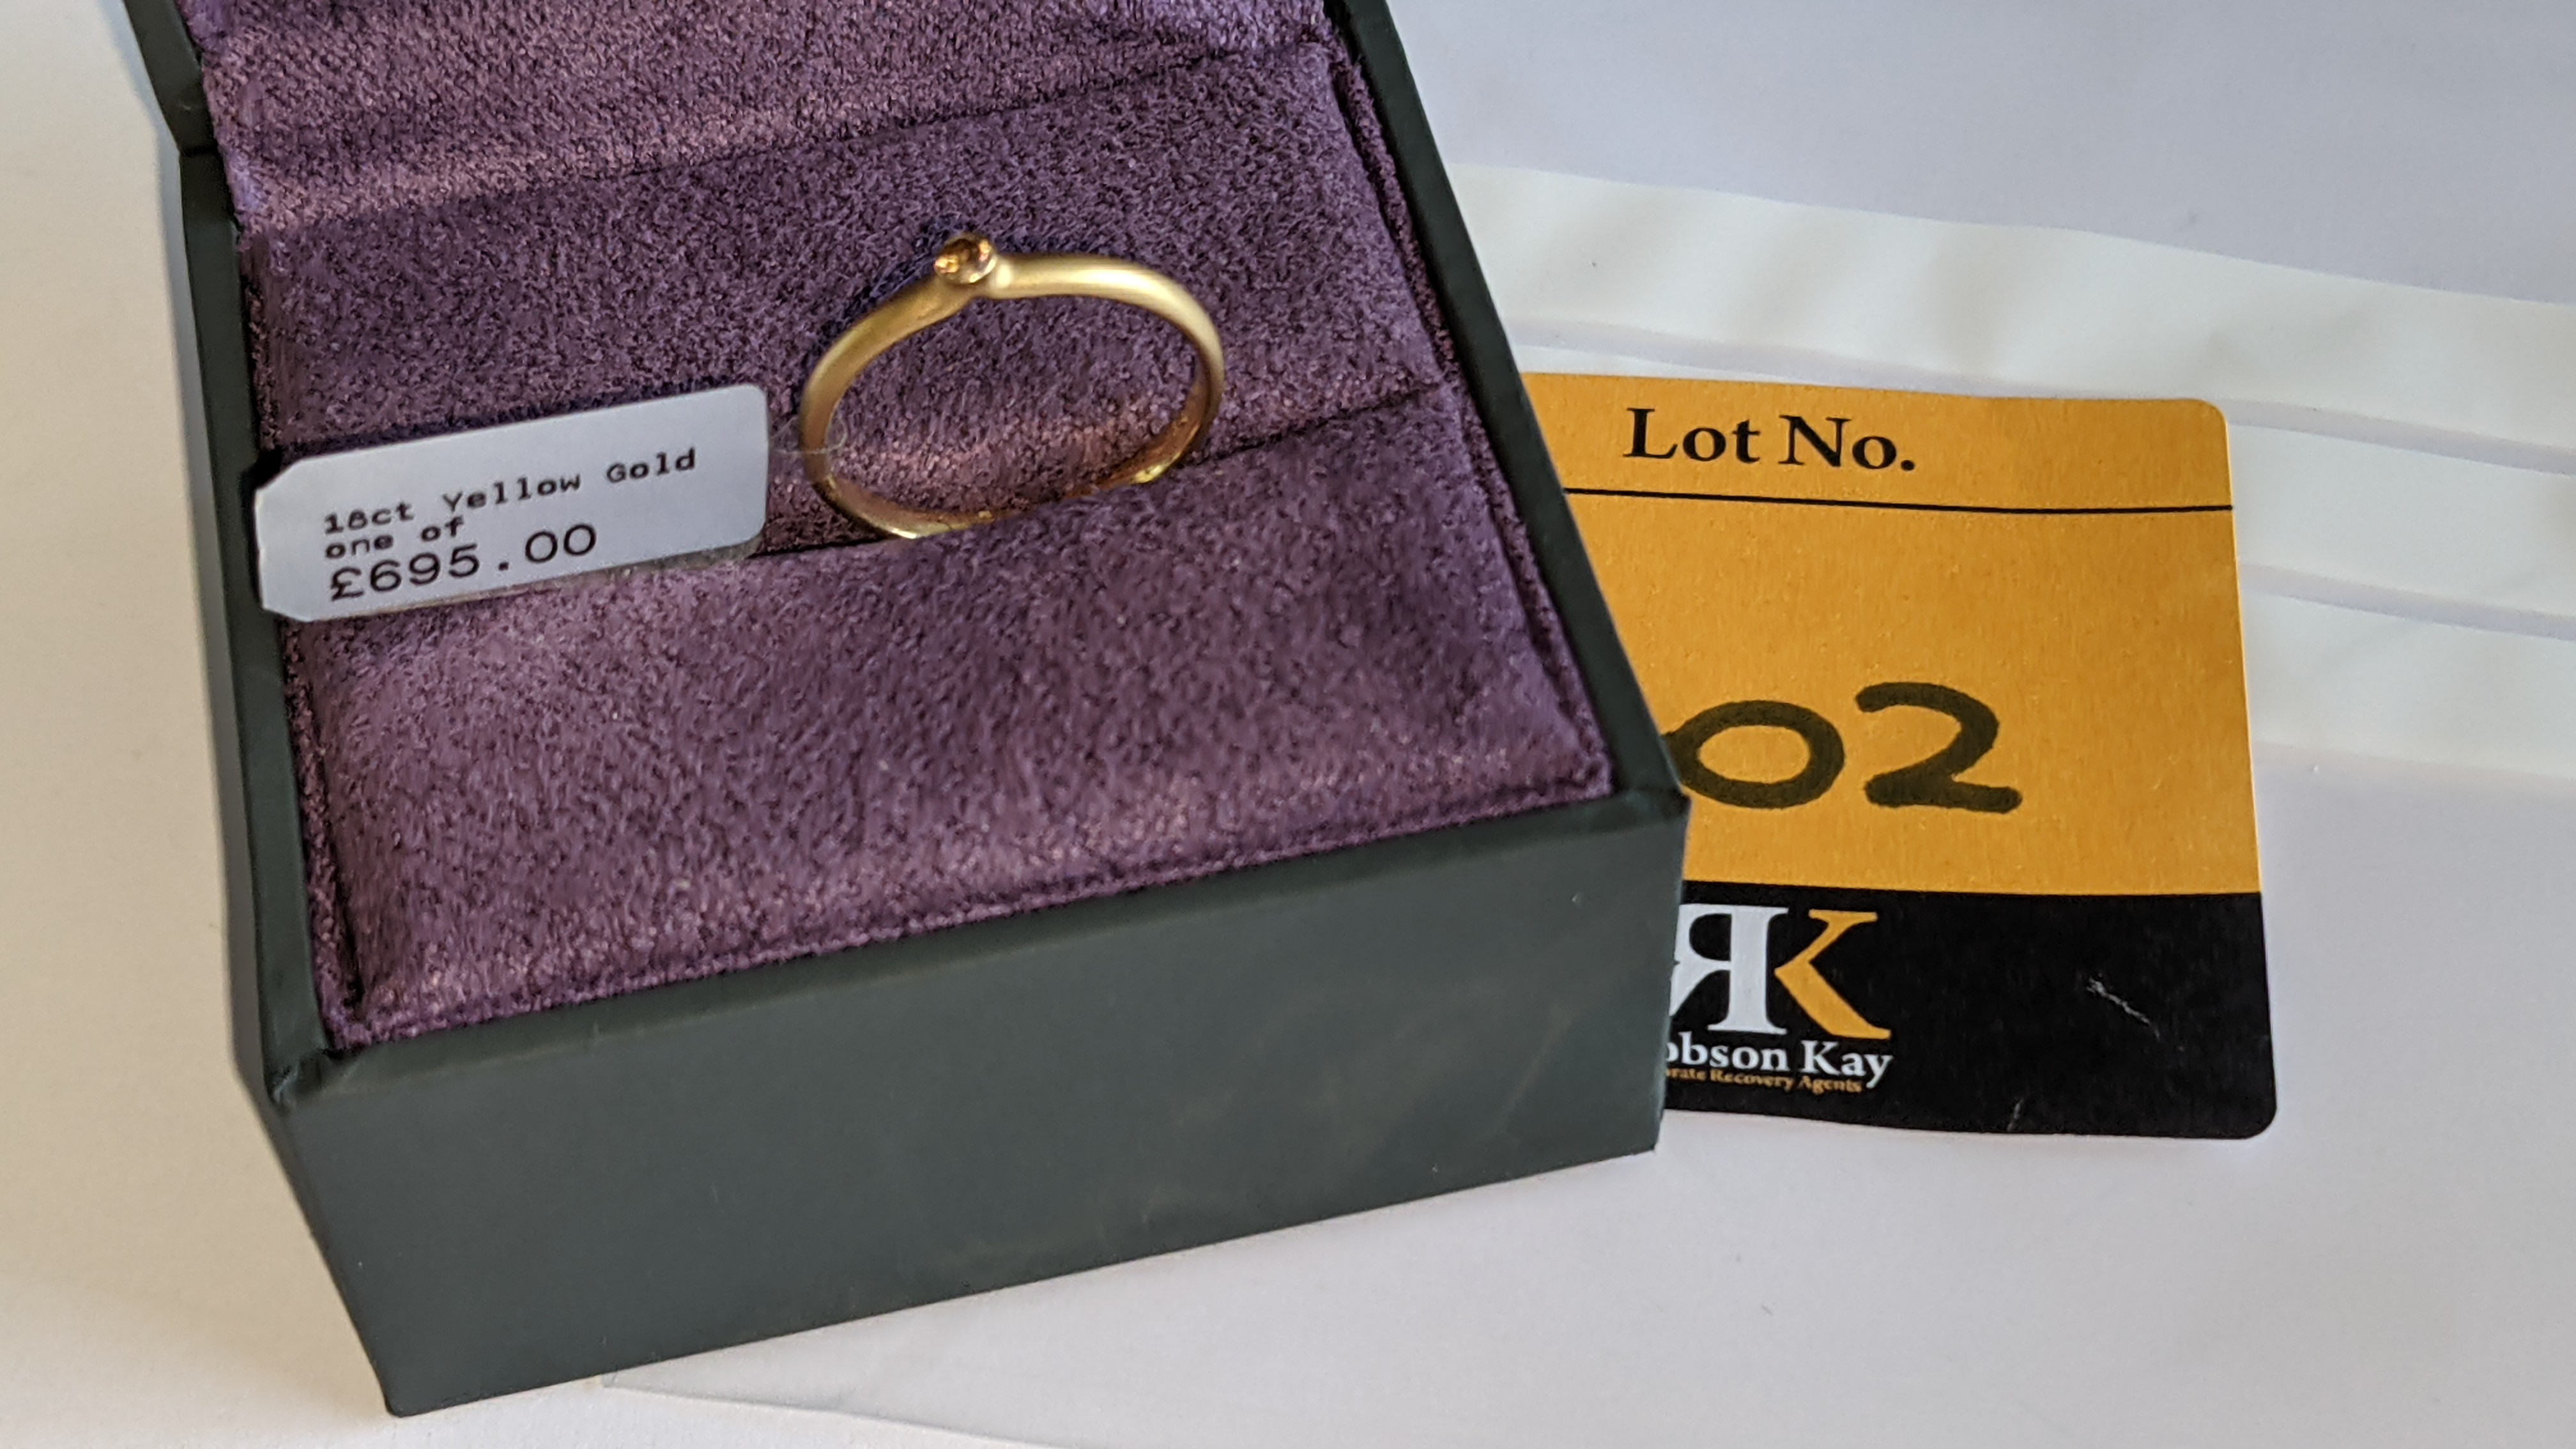 18ct yellow gold & champagne diamond ring RRP £695 - Image 13 of 14